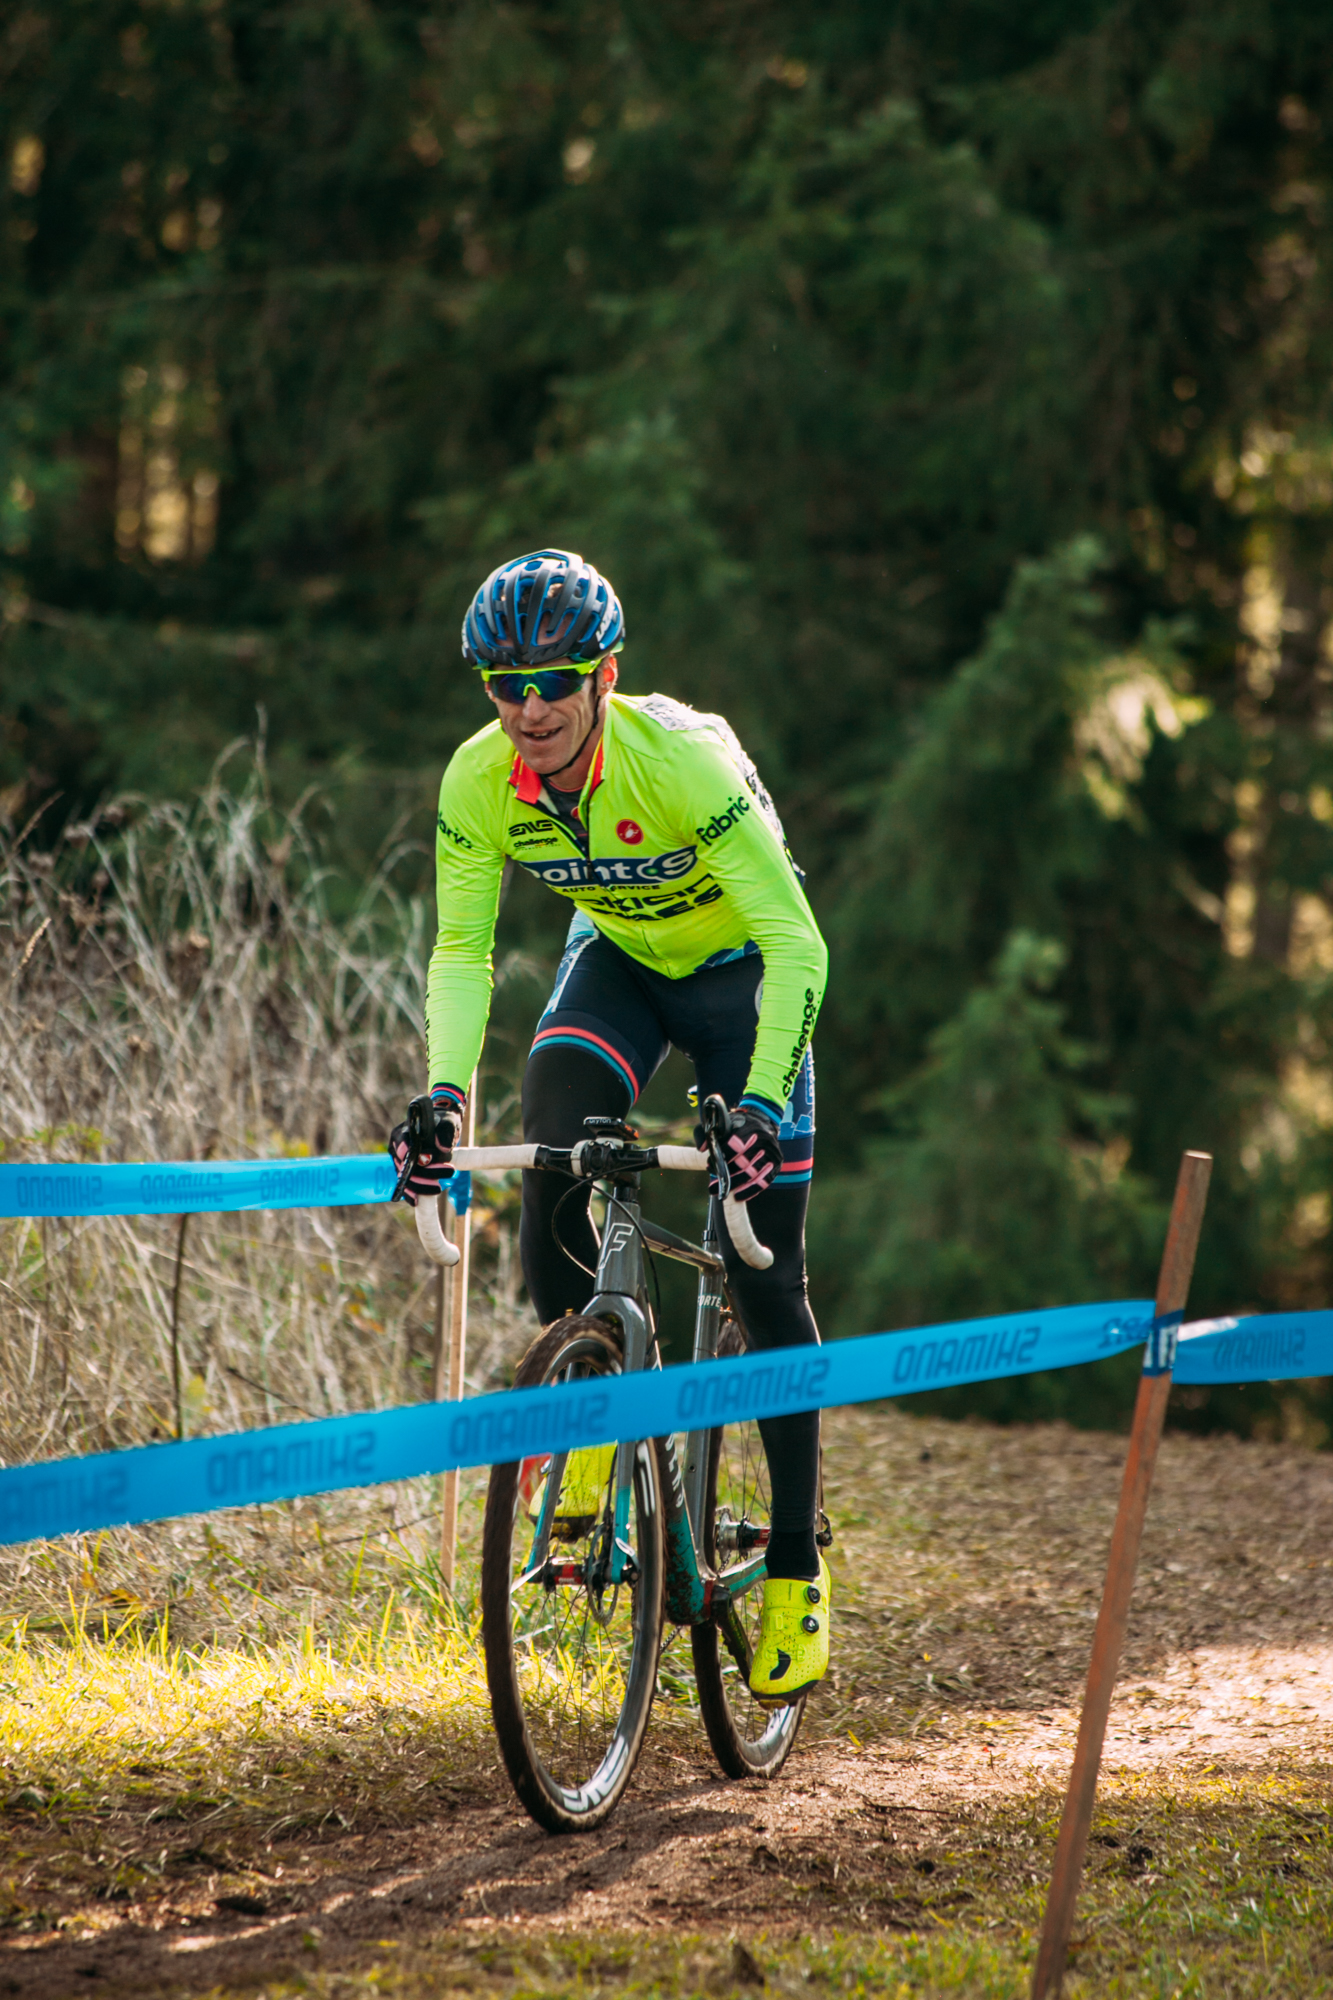 Cyclocross18_CCCX_RainierHS-152-mettlecycling.jpg